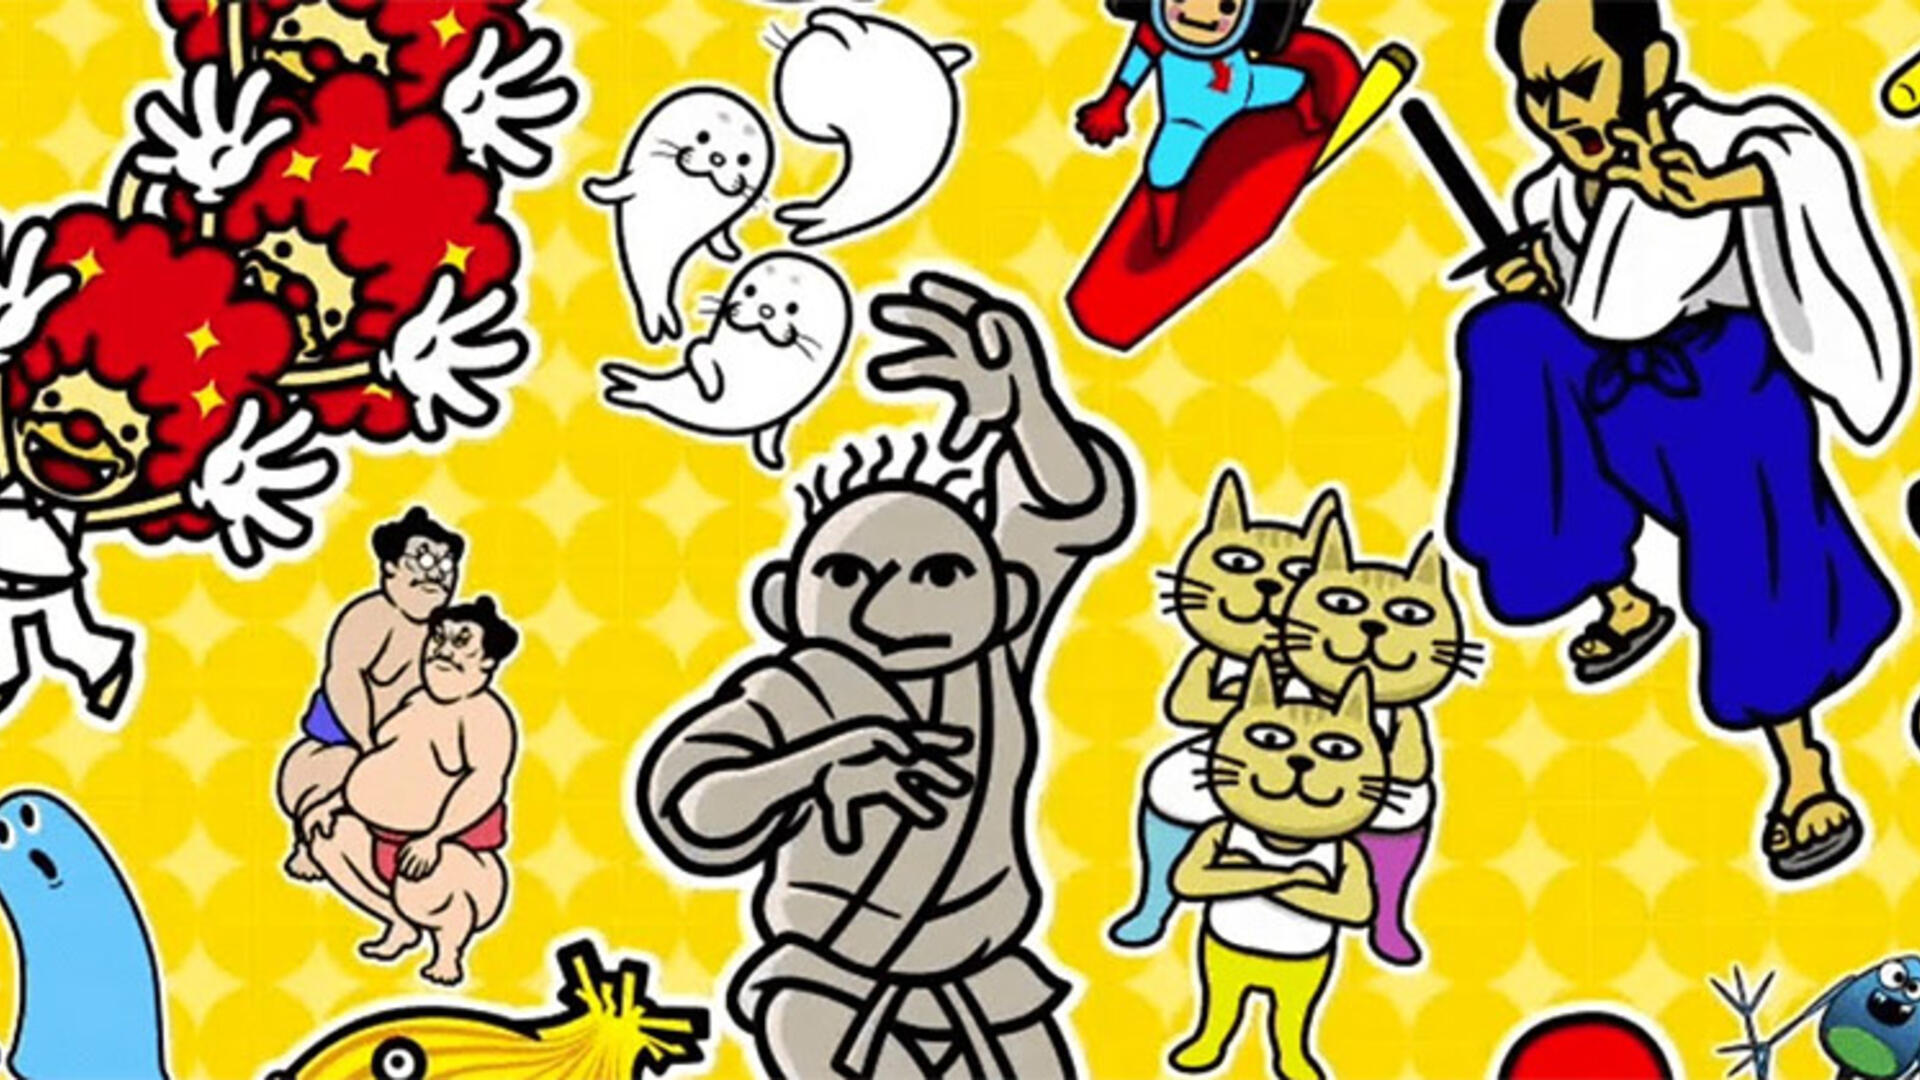 Rhythm Heaven Megamix 3DS Review: Back to the Refrain